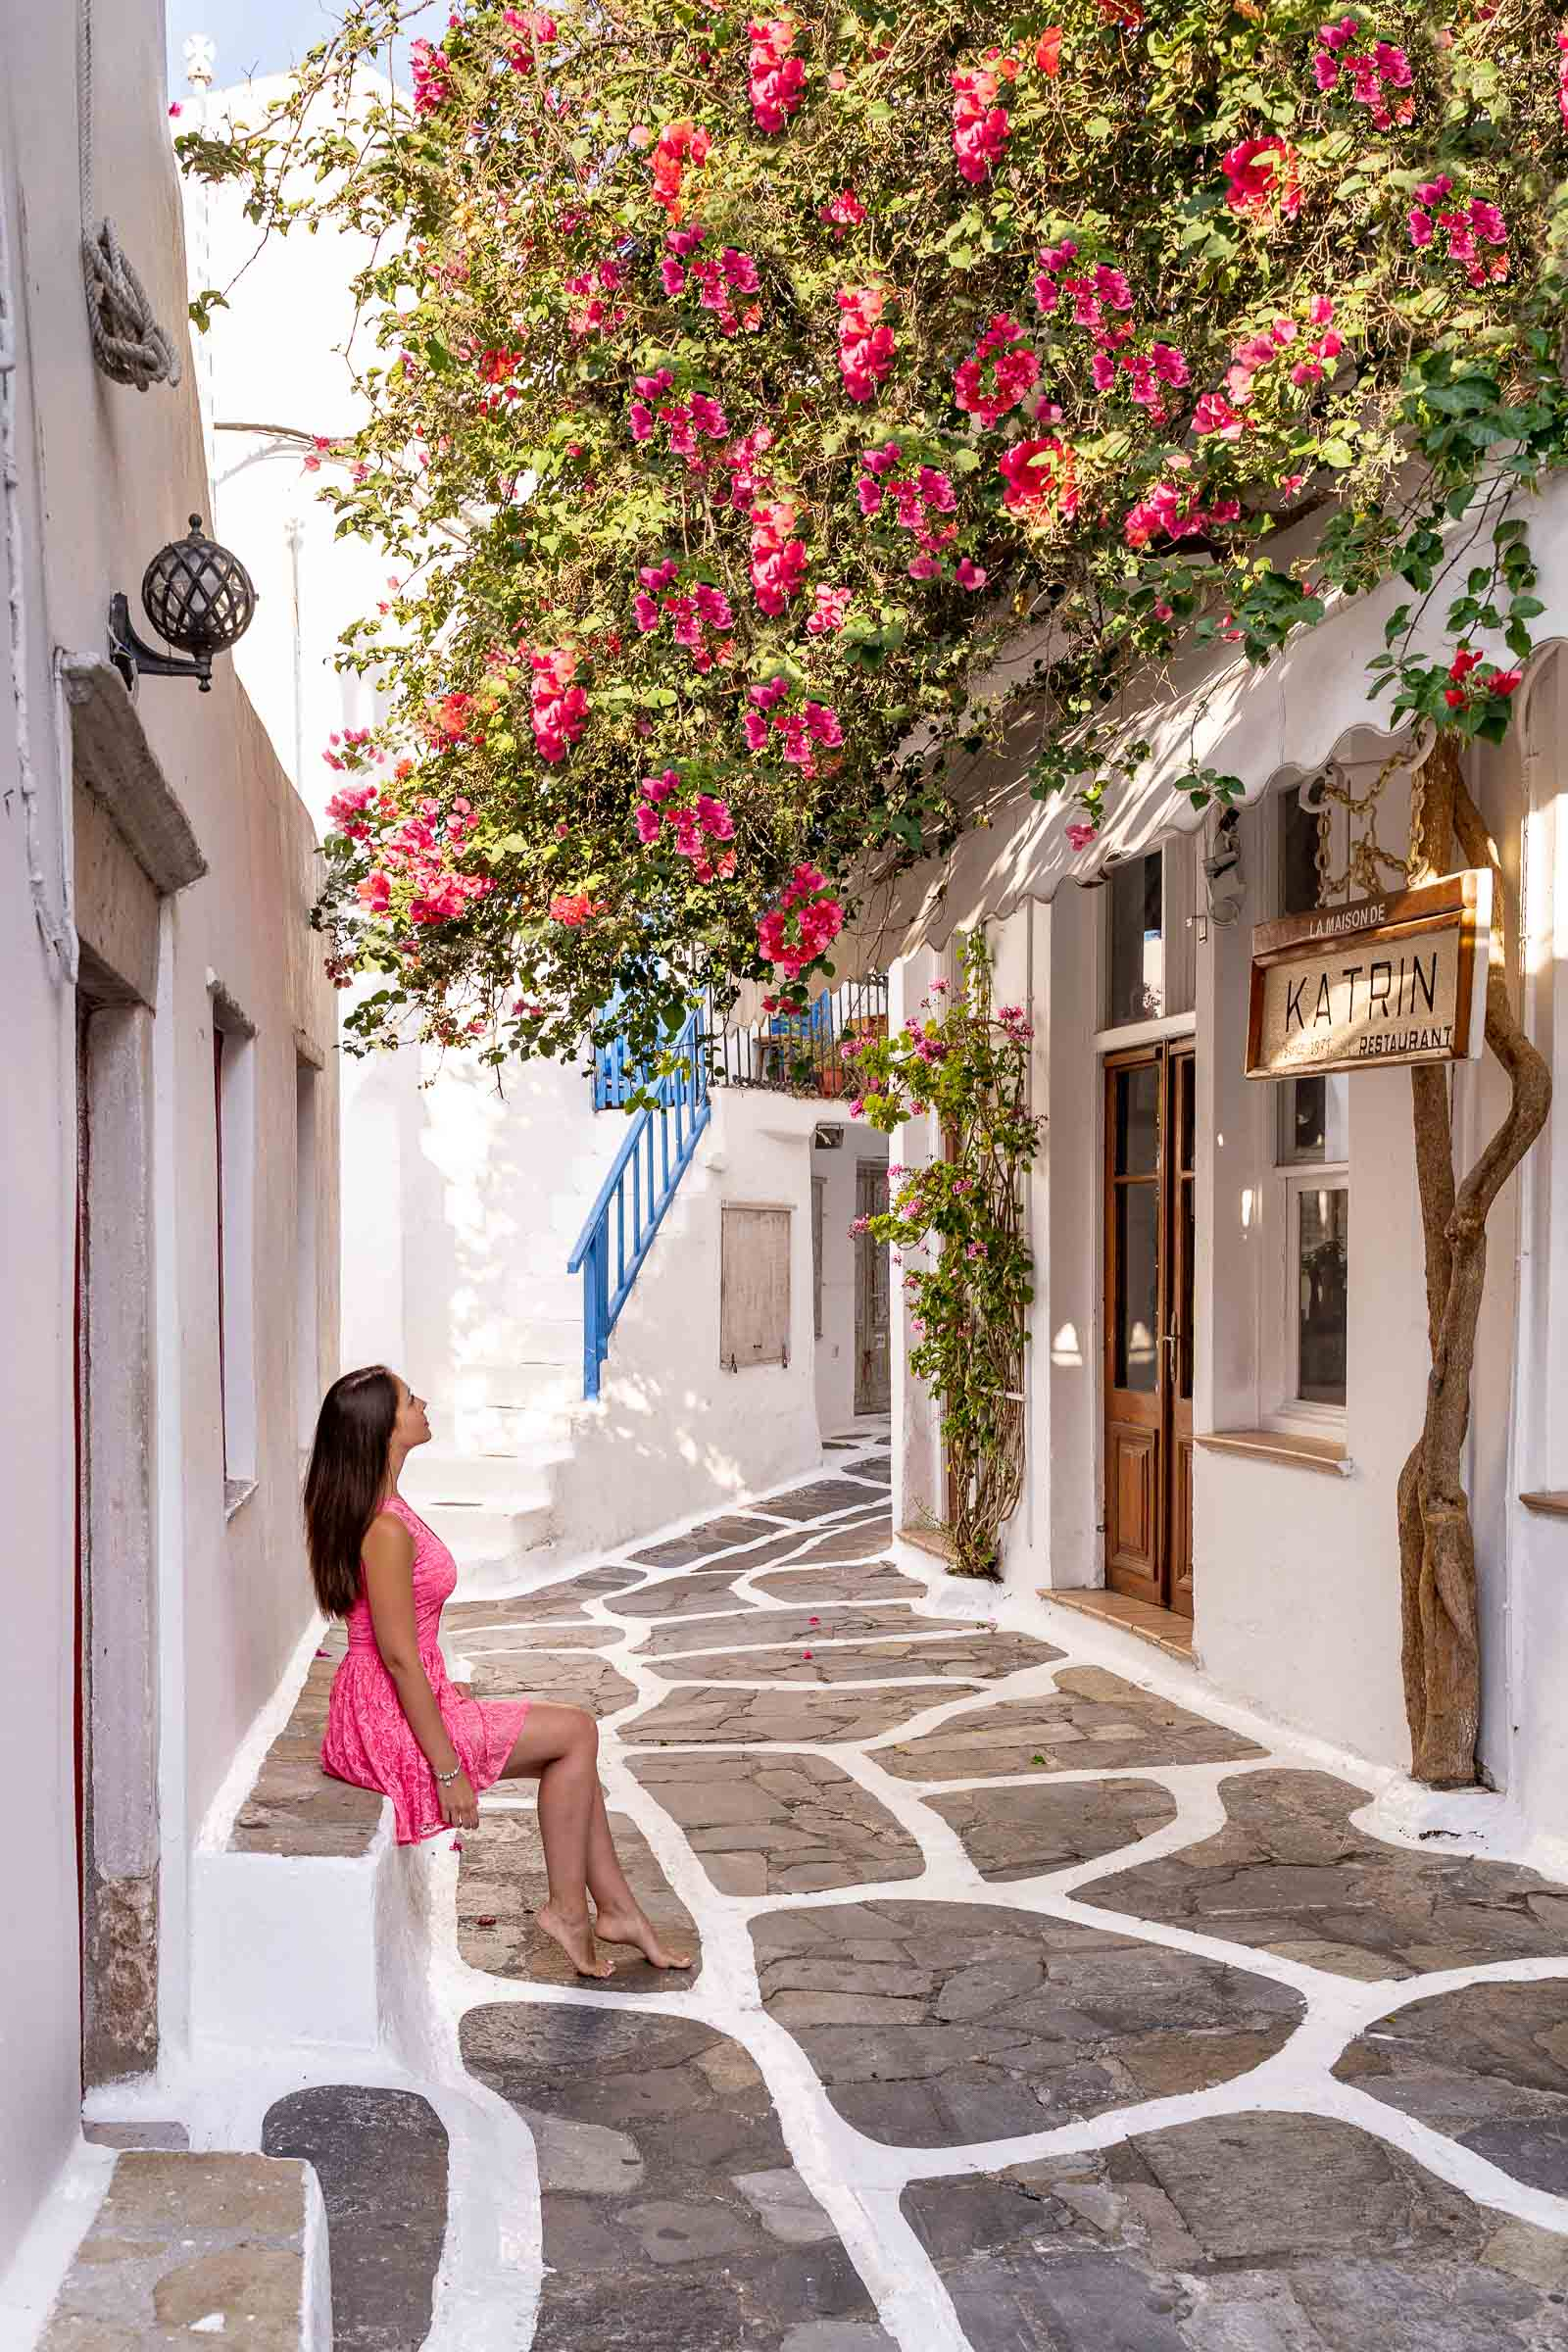 Girl in a pink dress sitting in front of La Maison de Katrin Restaurant which is one of the most instagrammable places in Mykonos